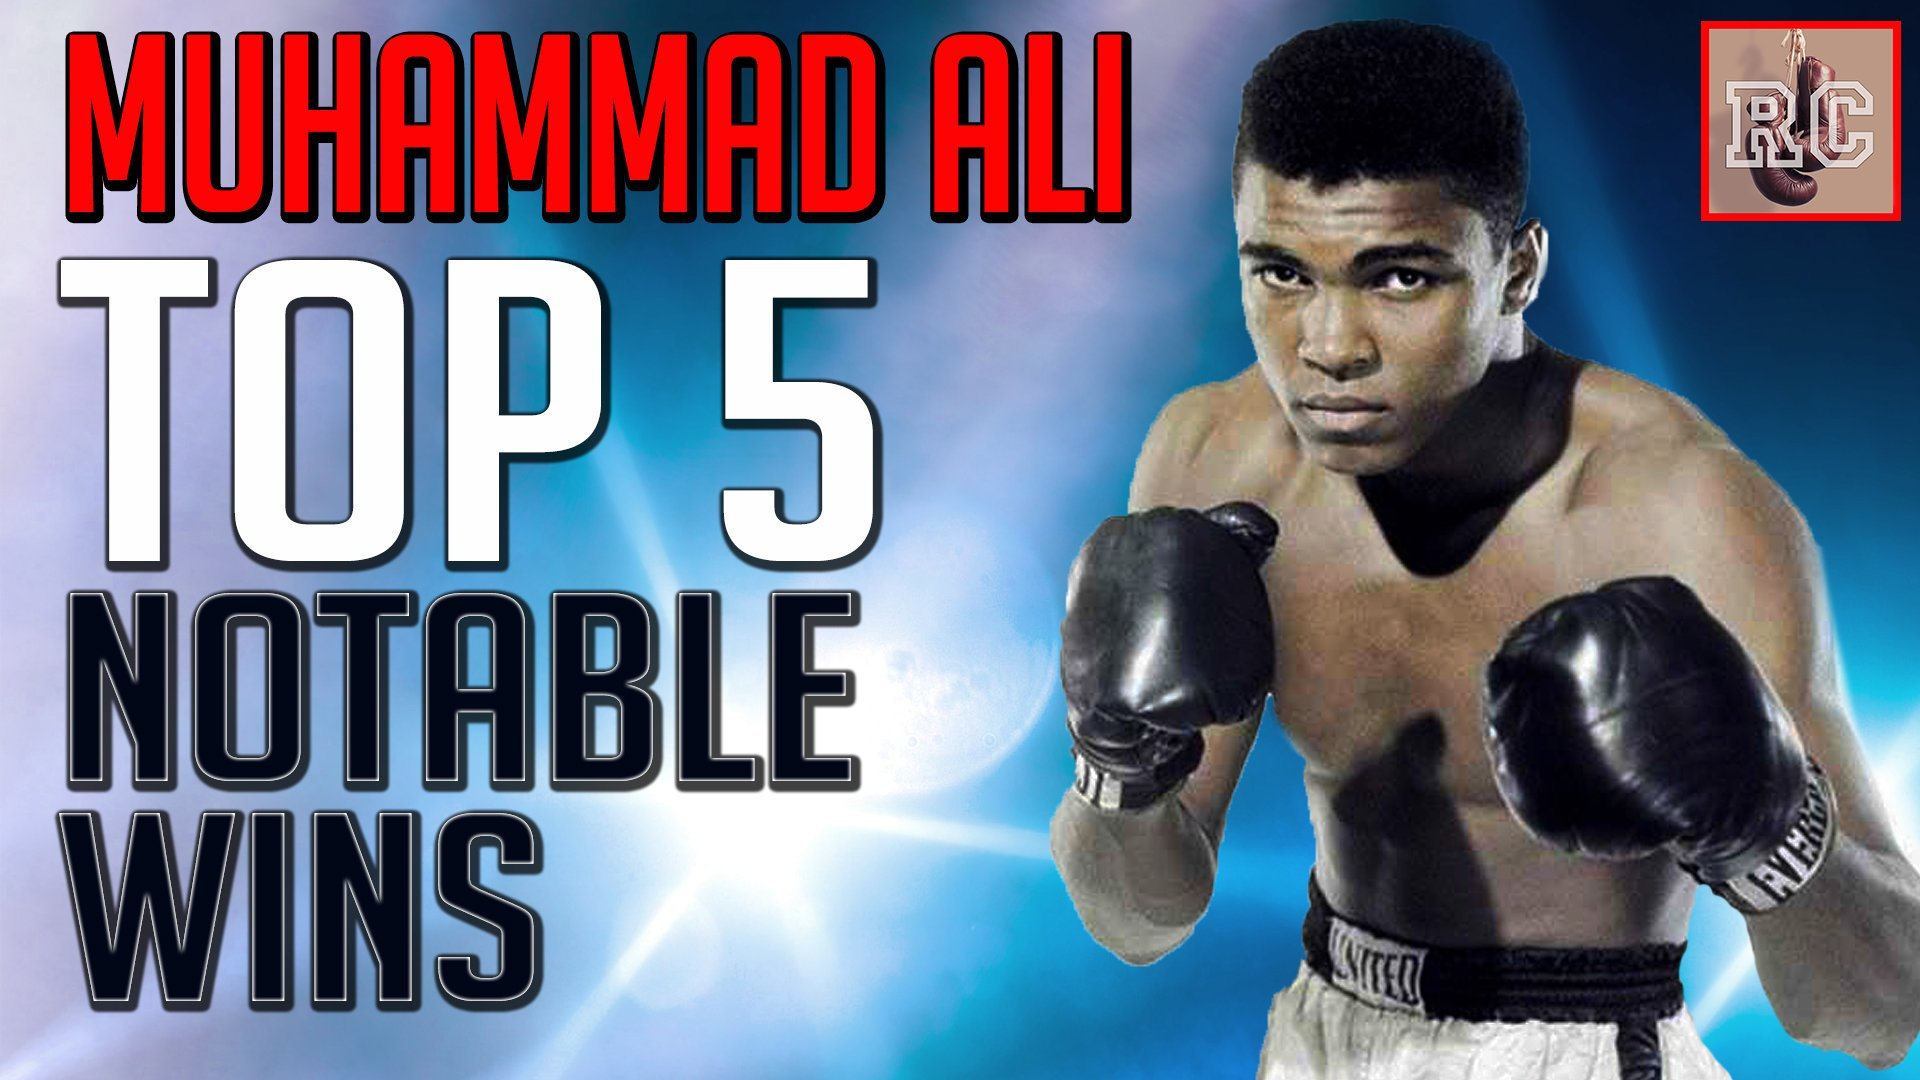 Muhammad Ali - https://www.youtube.com/watch?v=TLeijpHaFdA